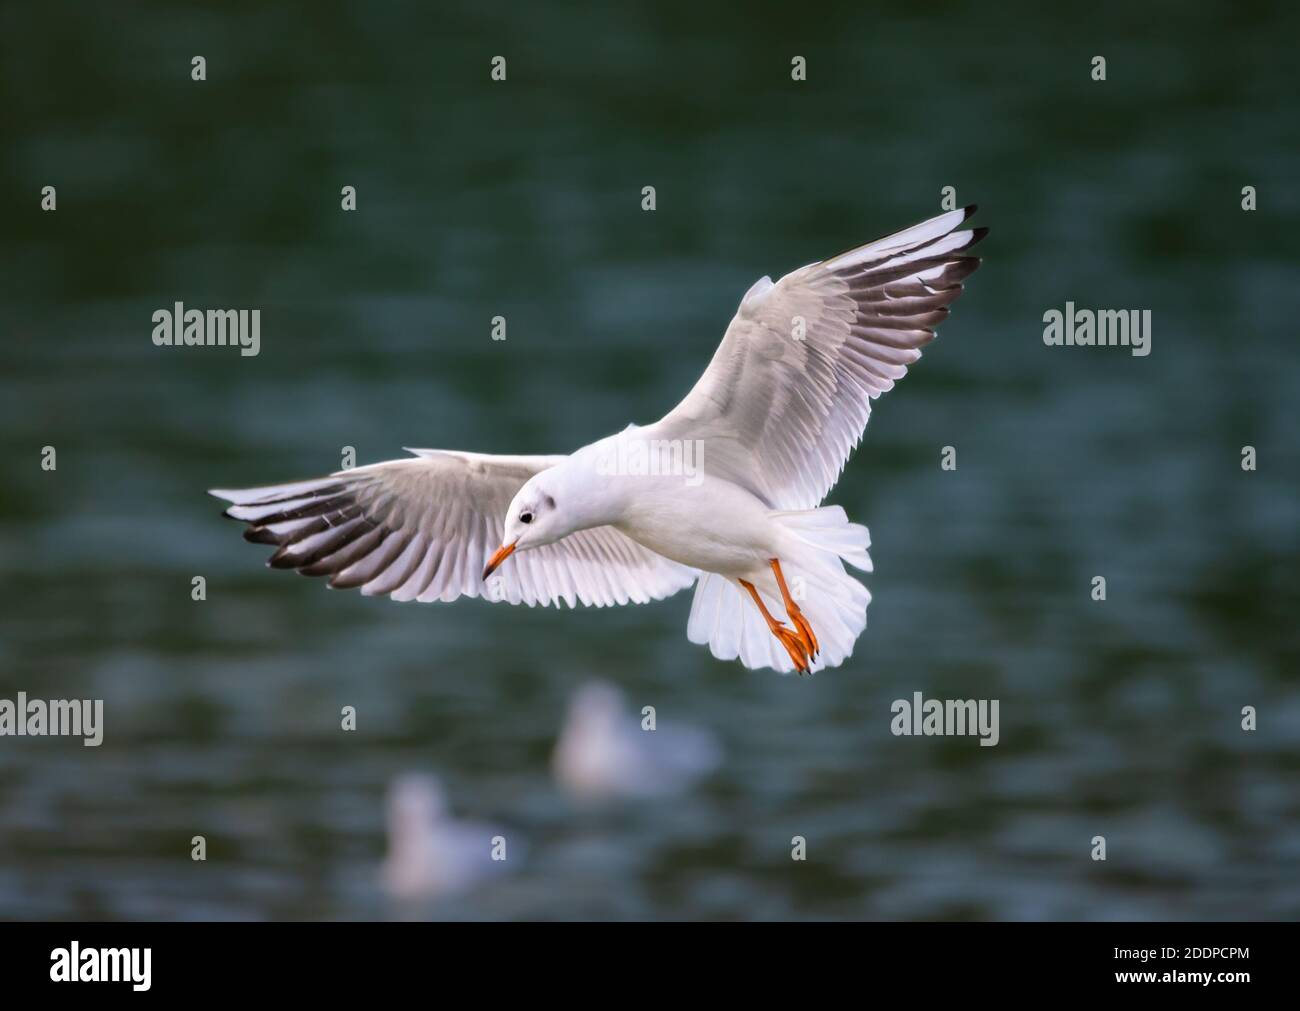 Black headed gull (Chroicocephalus ridibundus) with wings stretched out flying low over water in Autumn in the UK. Seagull in flight. Stock Photo